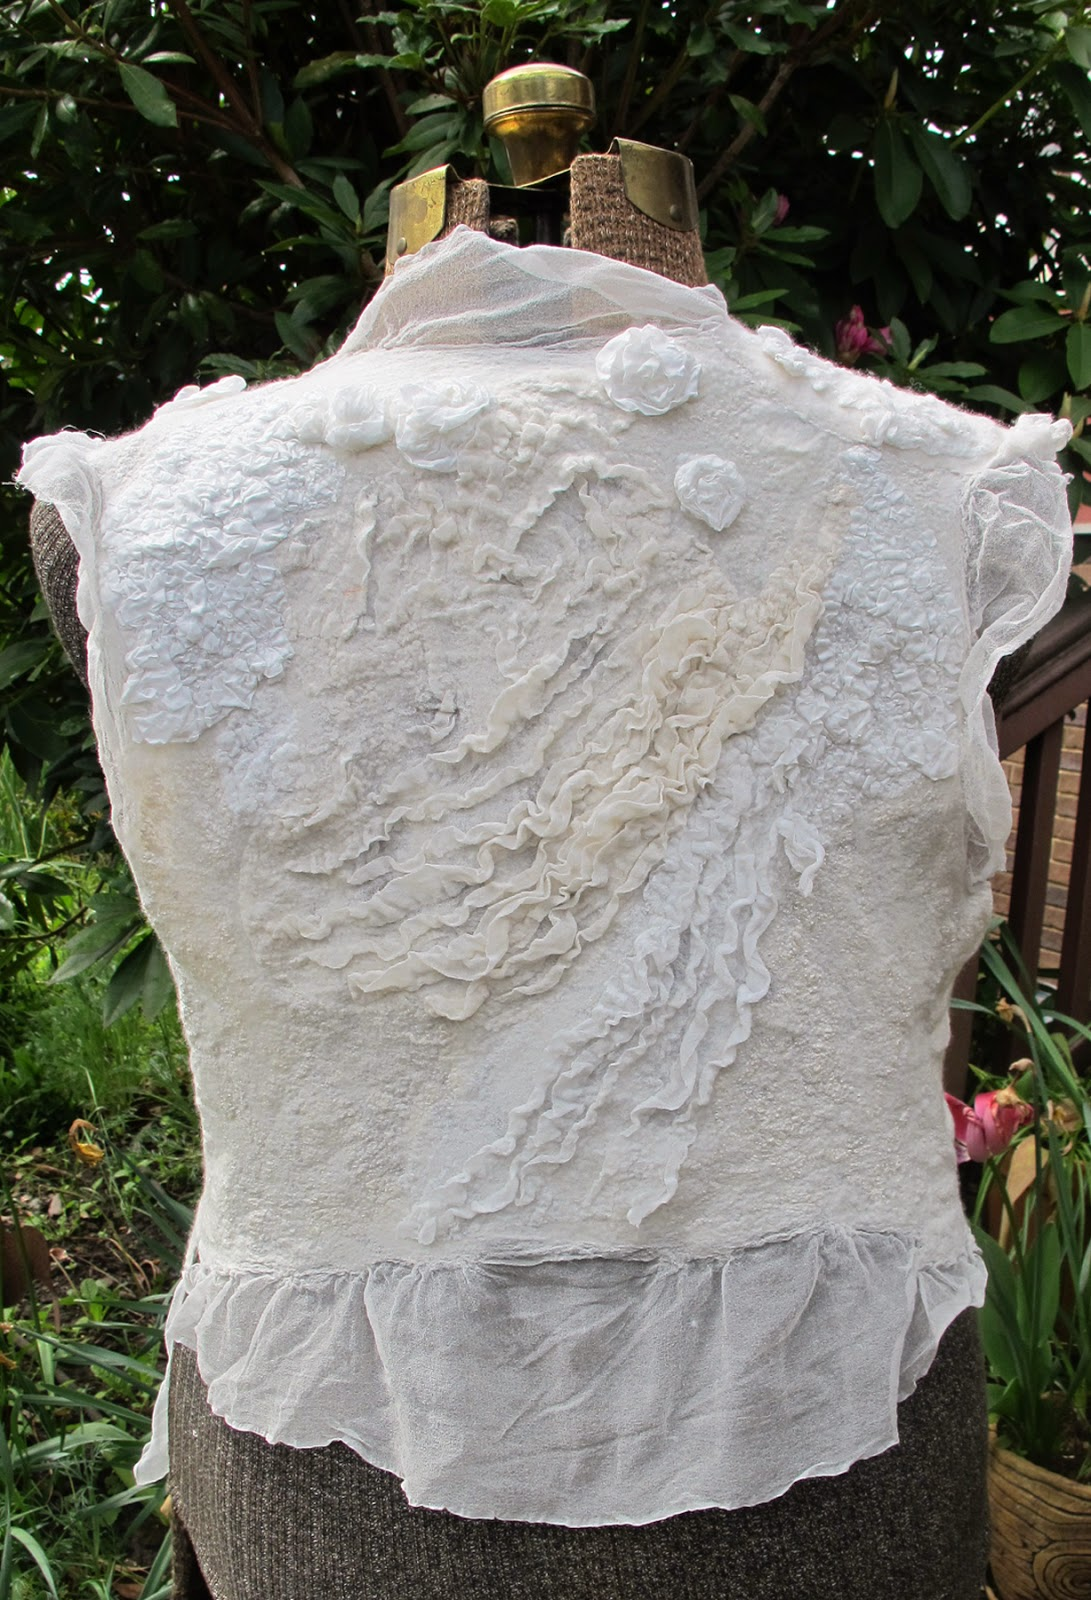 Pat Spark white felt vest from the back